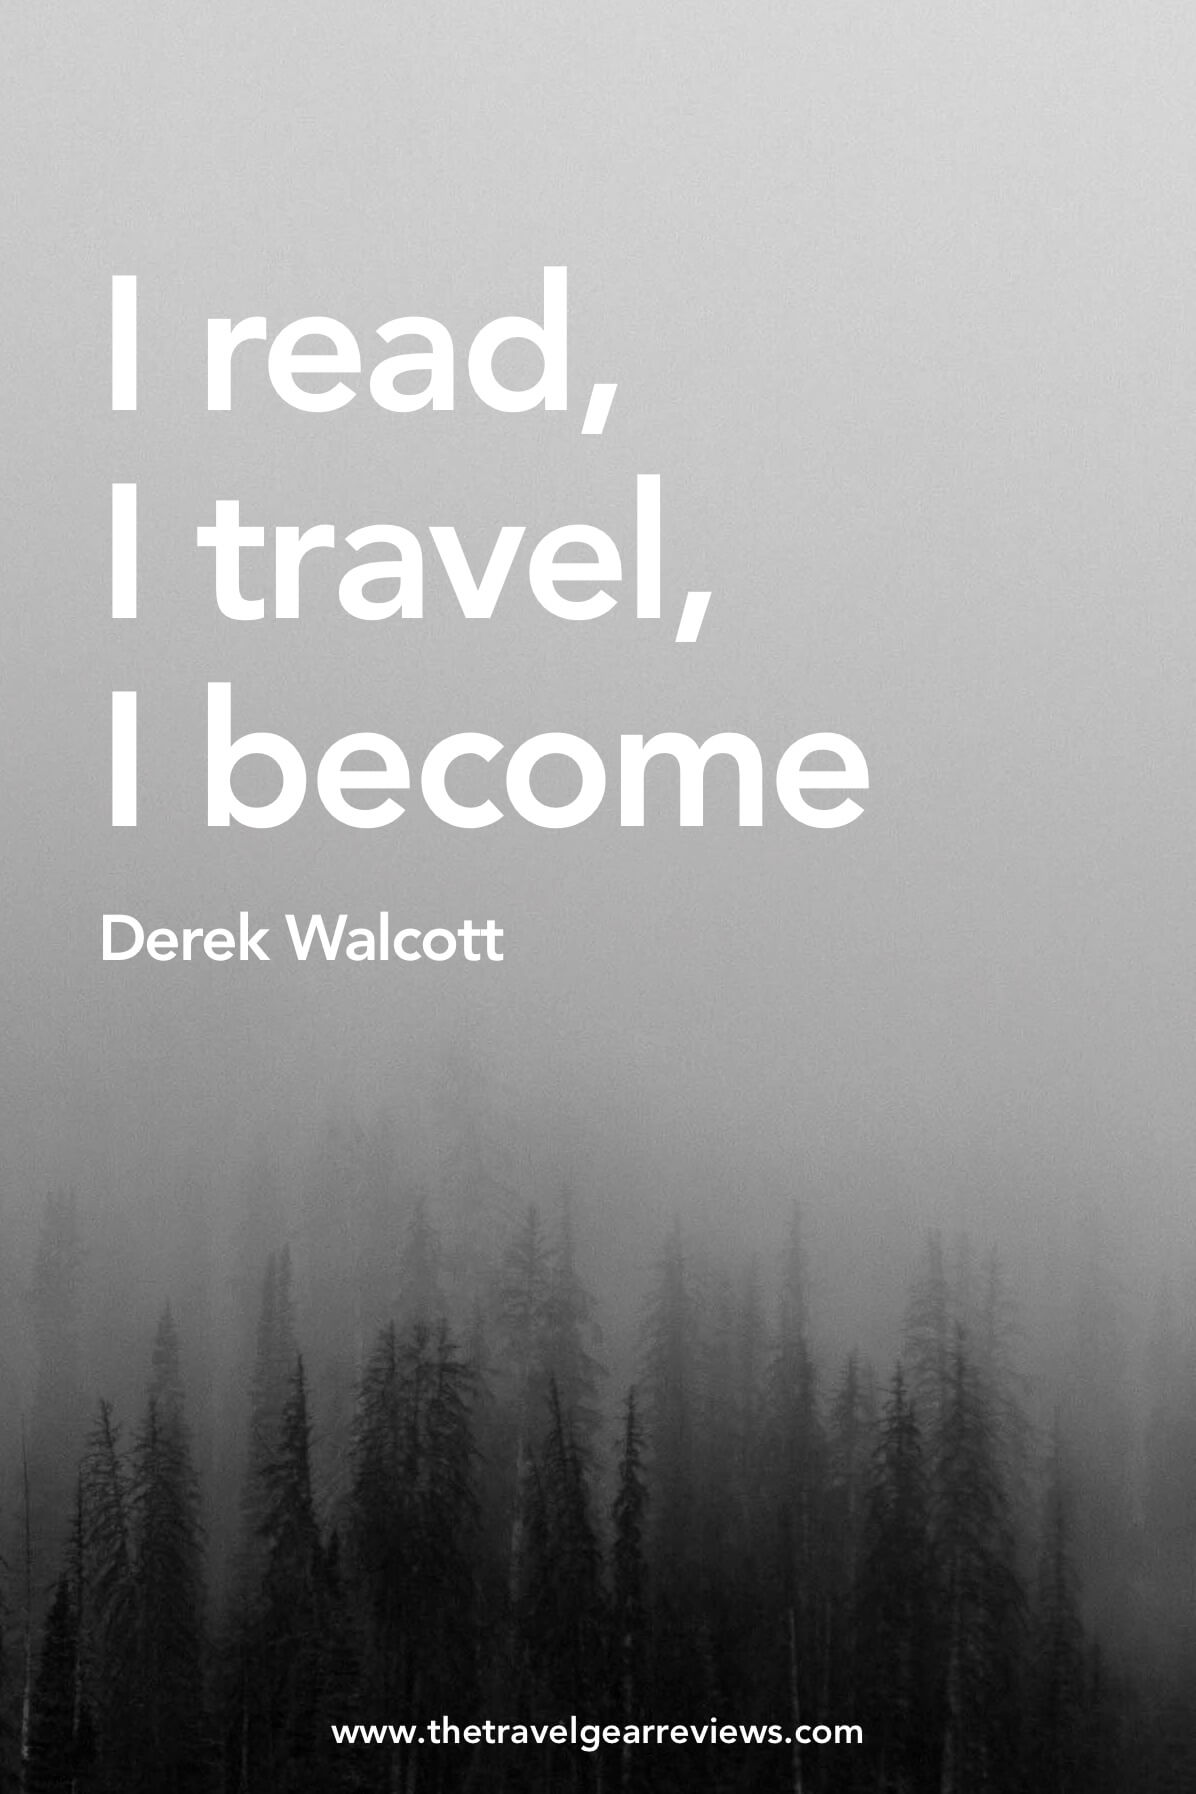 100 Best Travel Quotes and Saying - Page 2 of 4 - Thither